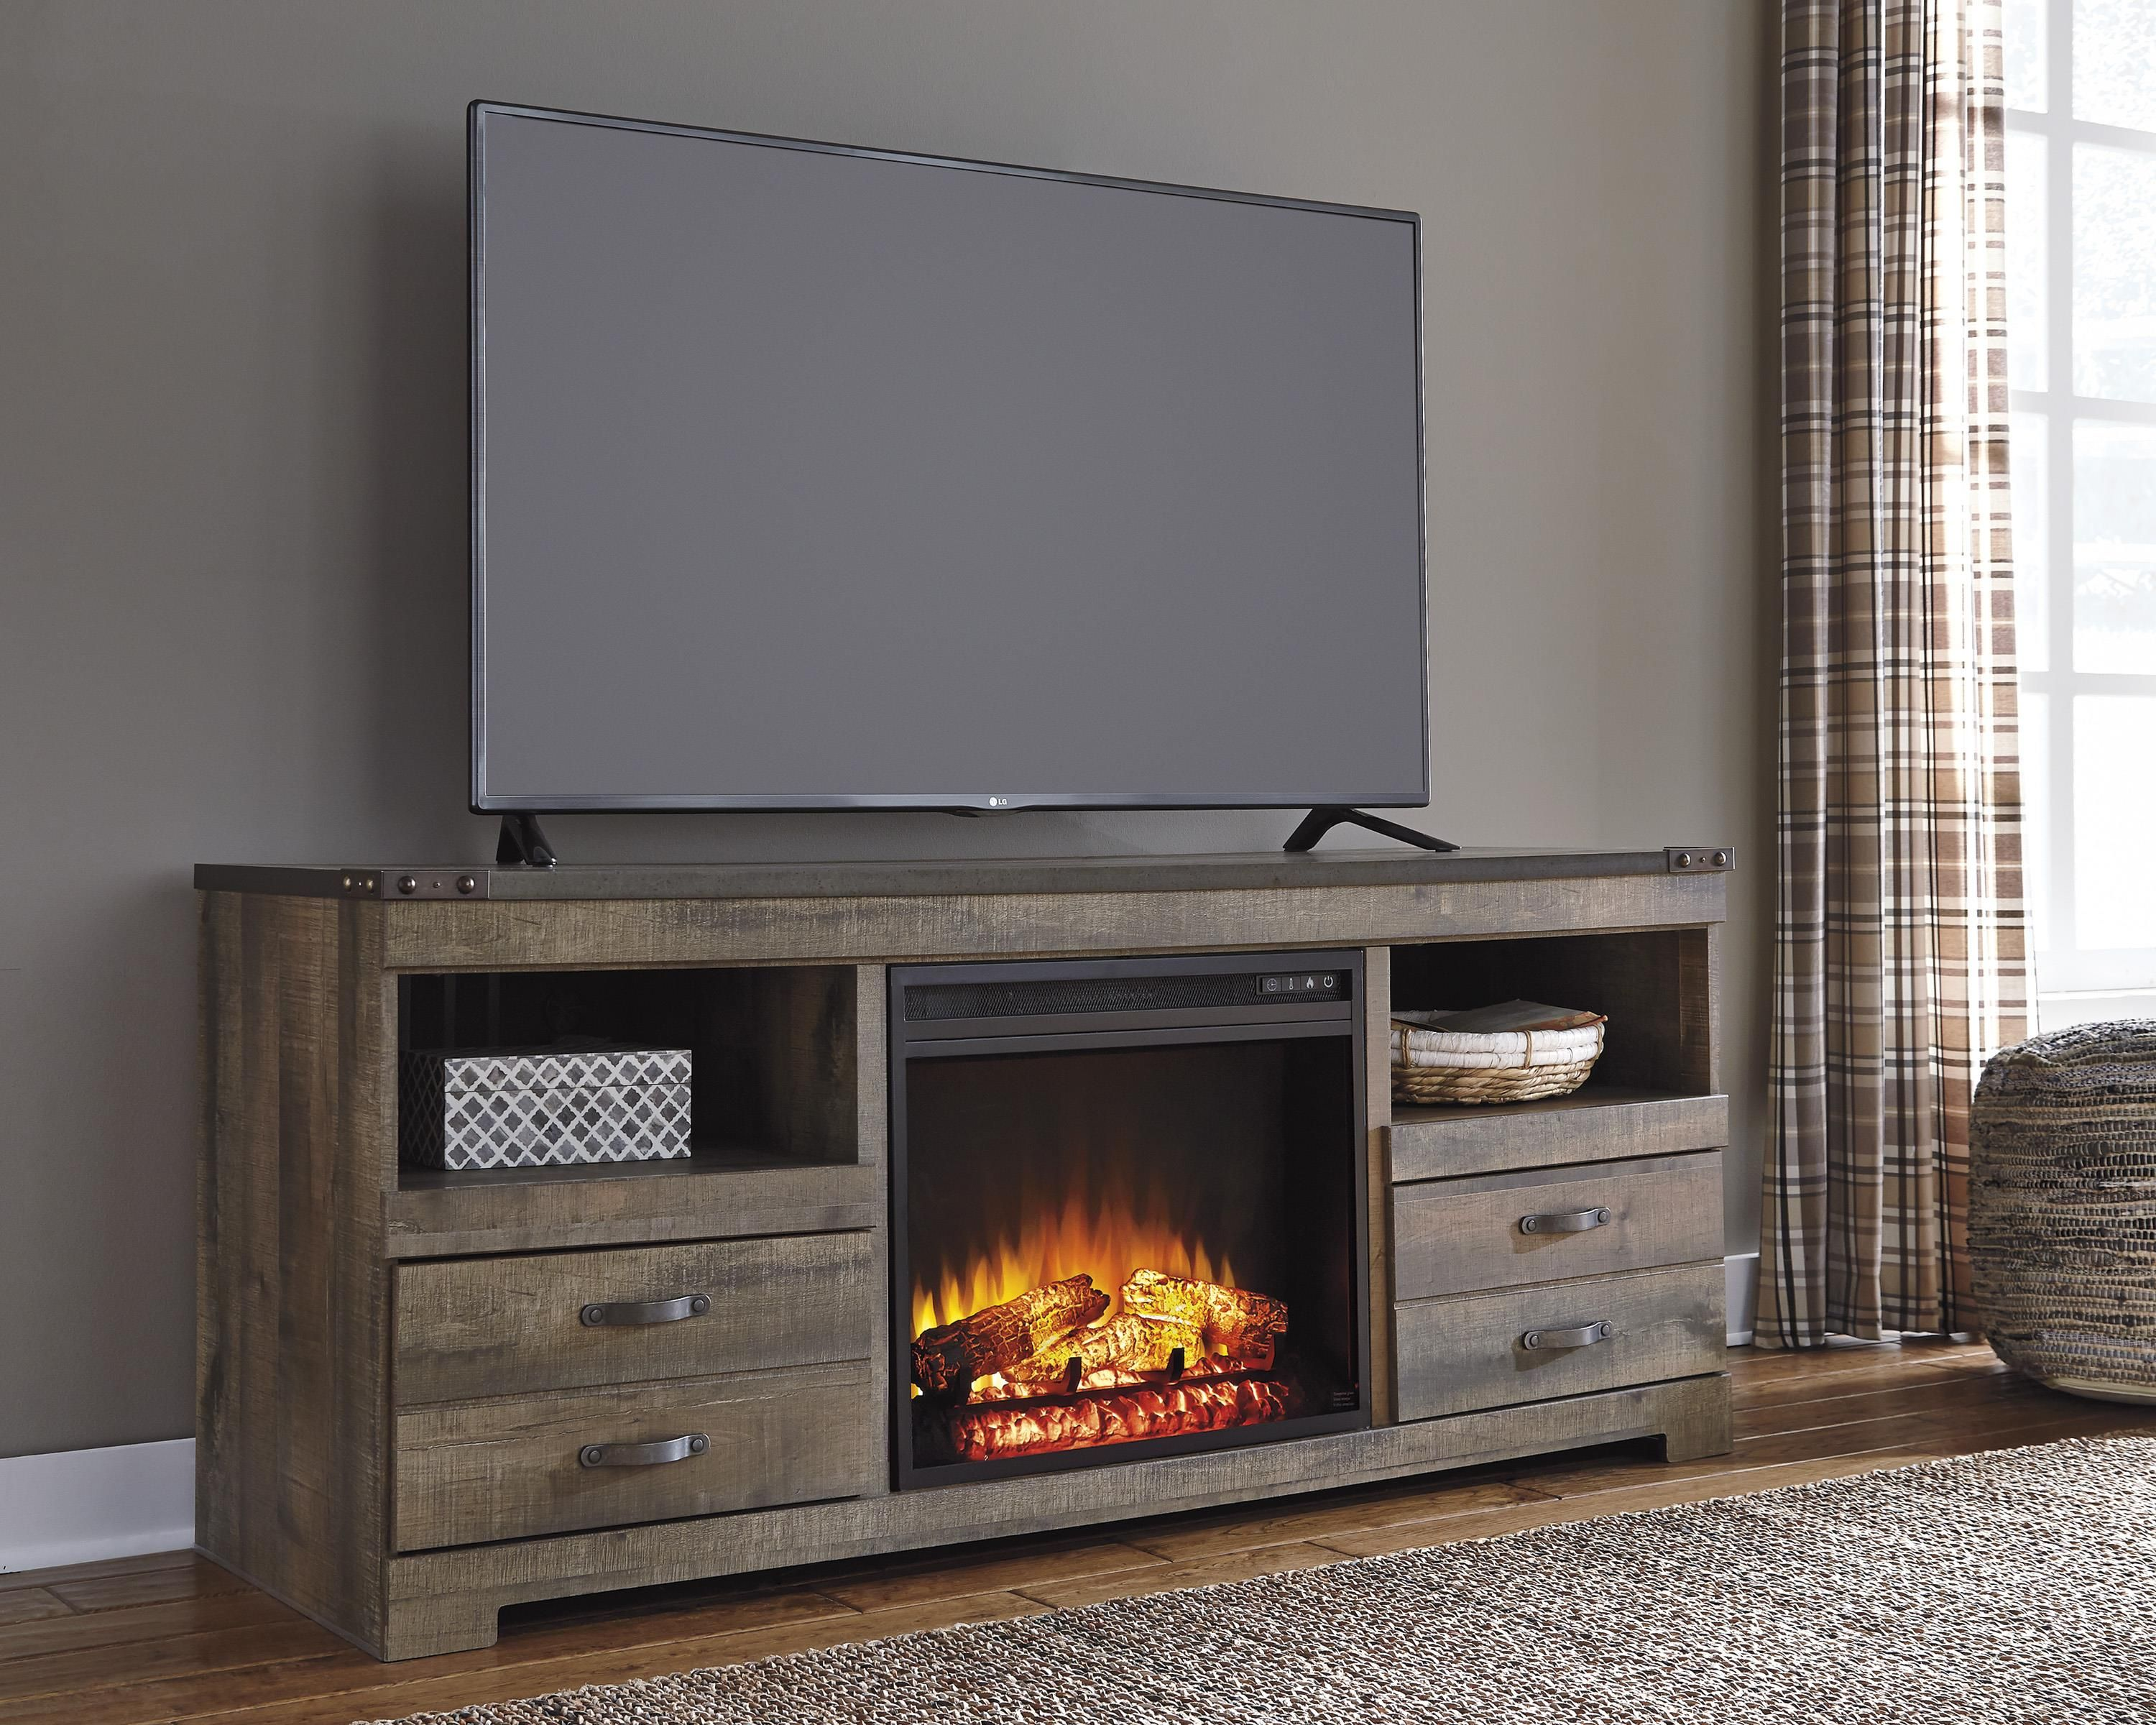 stands stand fireplace rustic electric design xl insert veneer ashley products by tv furniture with mango